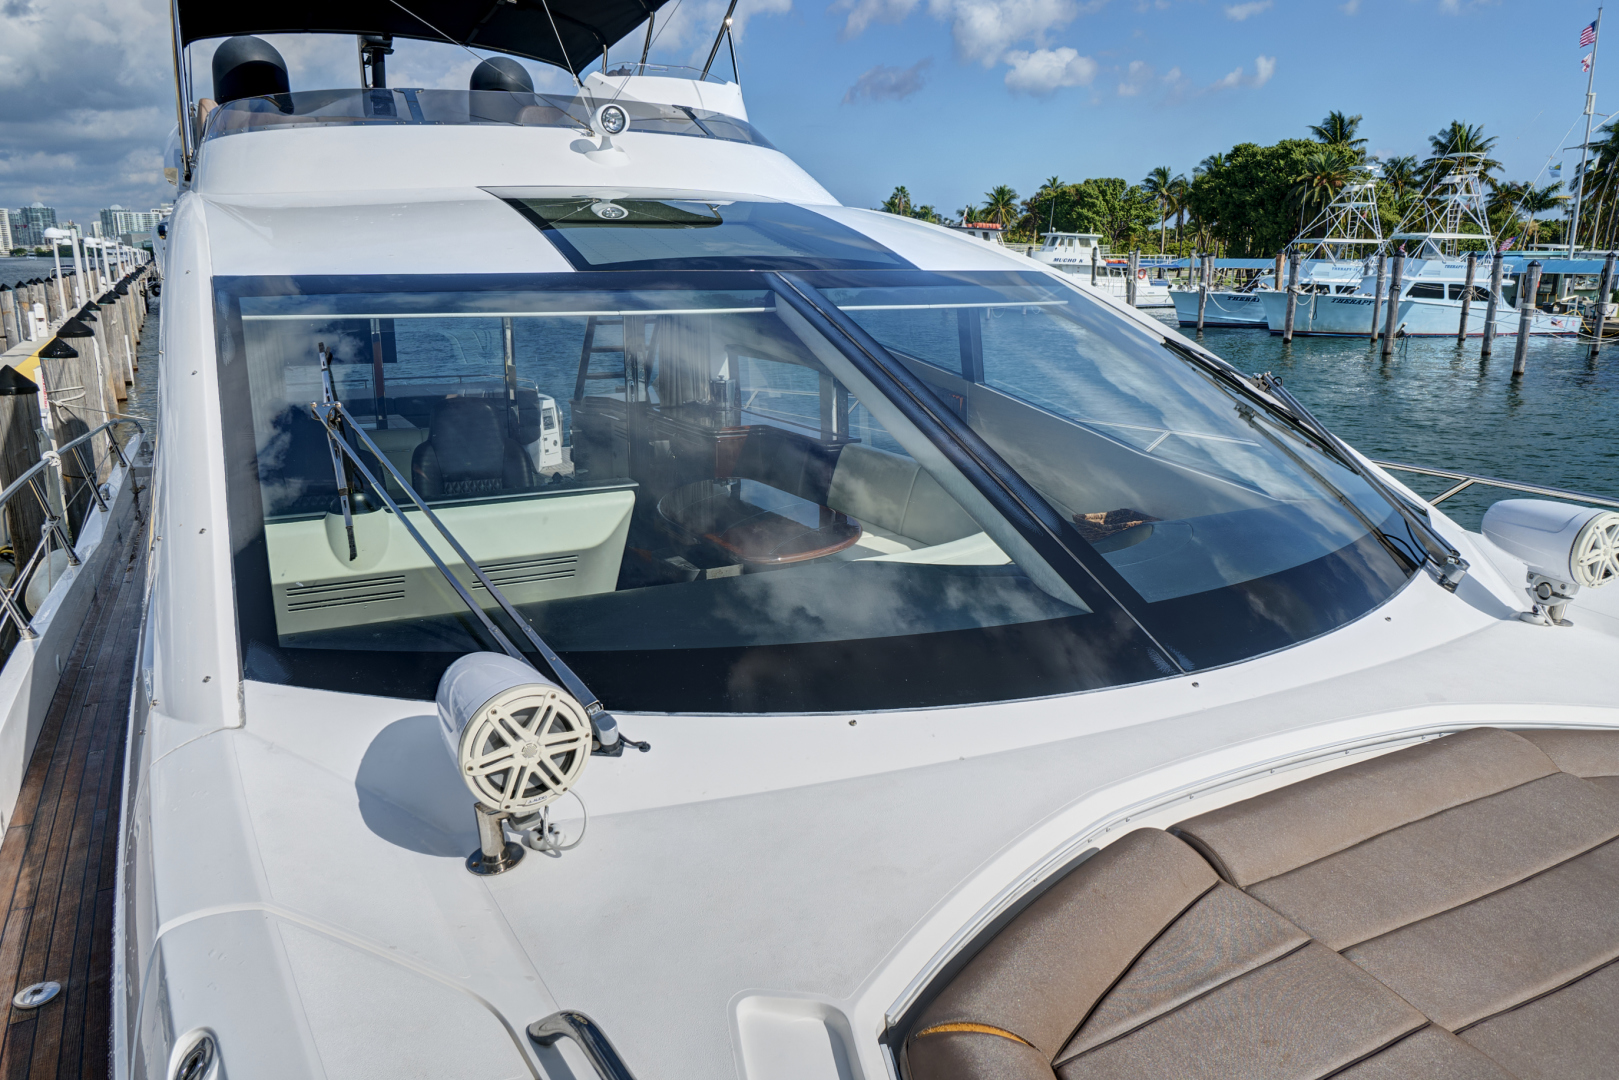 Sunseeker-68 Sport Yacht 2014-New Page Miami Beach-Florida-United States-1581182 | Thumbnail